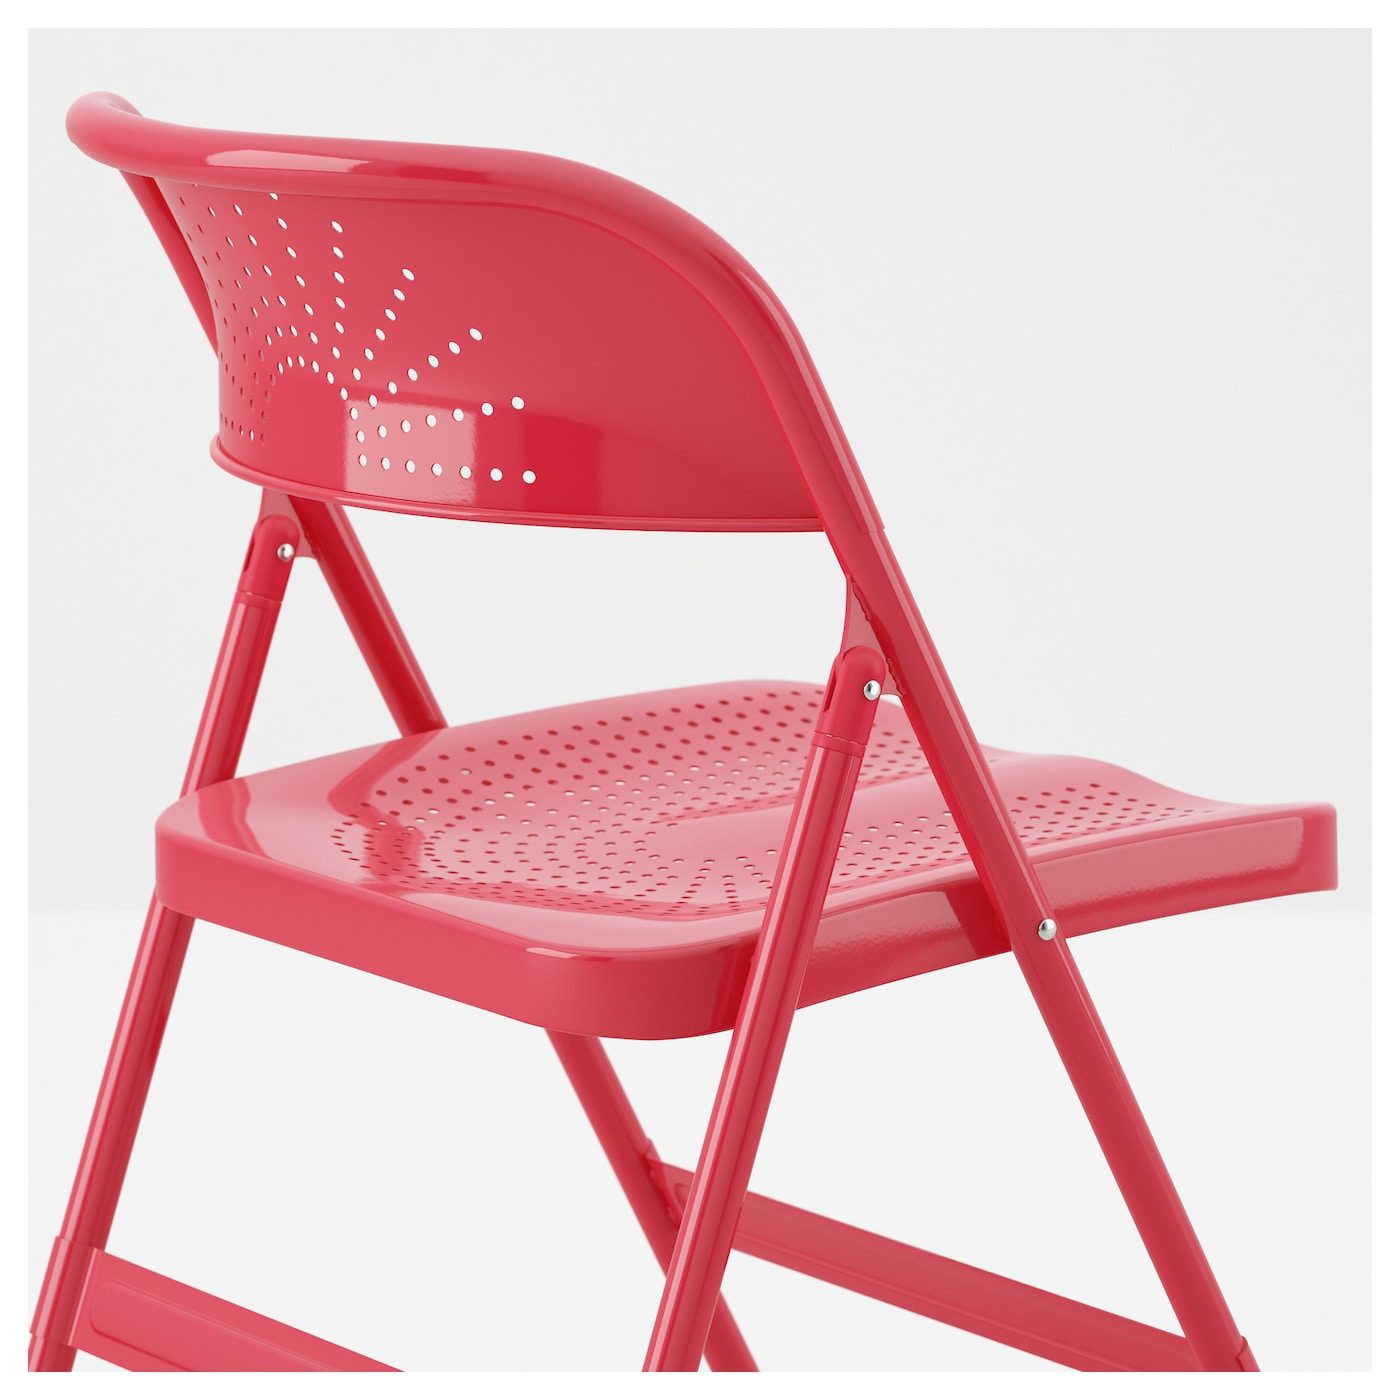 Bedroom Benches Ikea Step Stool Folding: FRODE Folding Chair Red